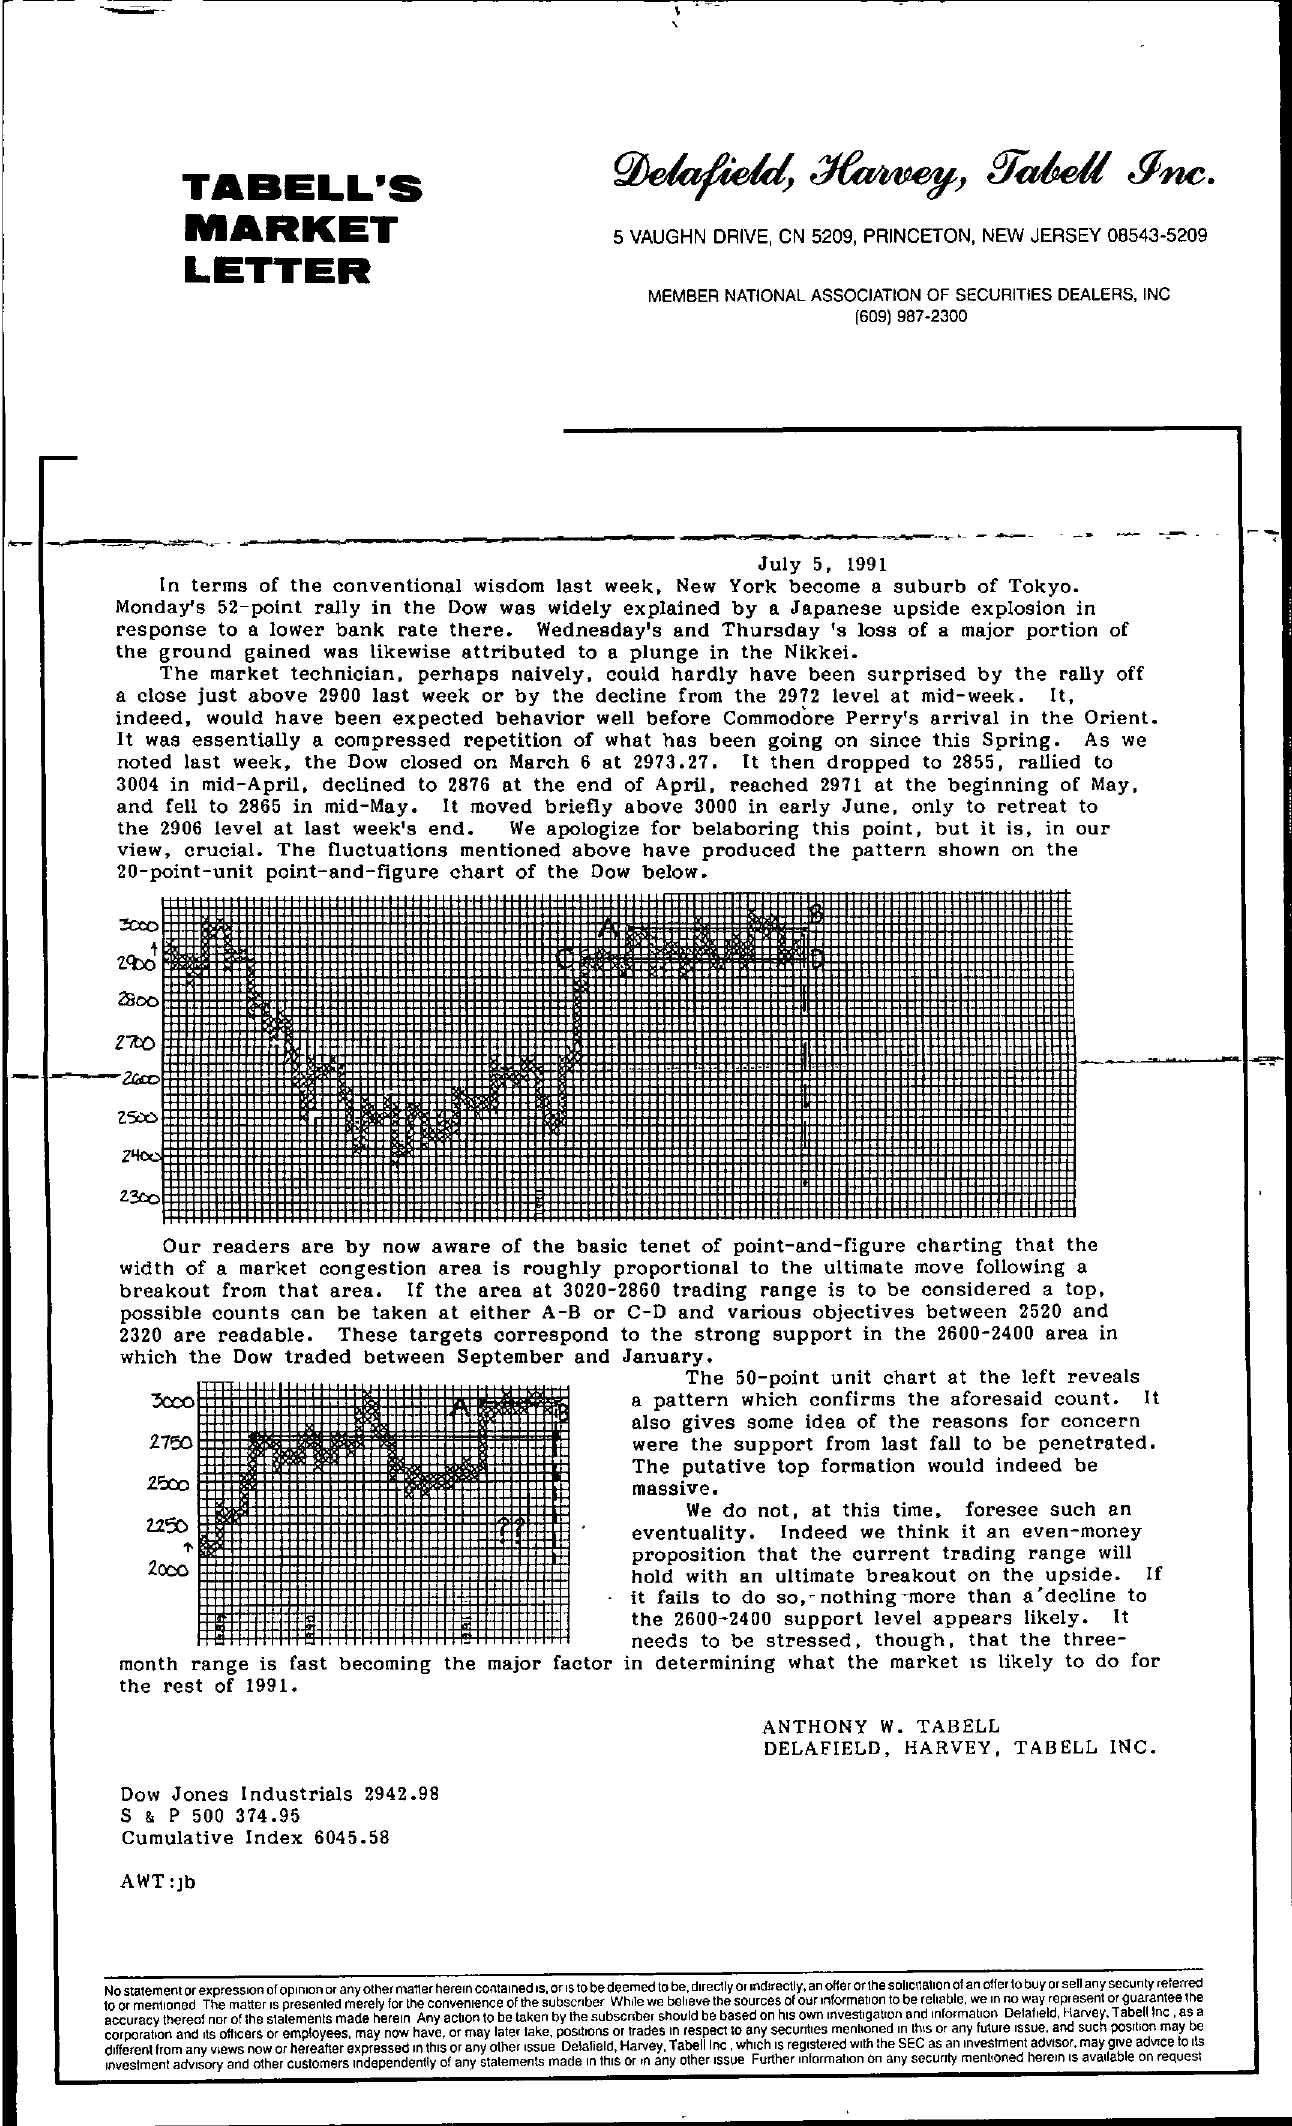 Tabell's Market Letter - July 05, 1991